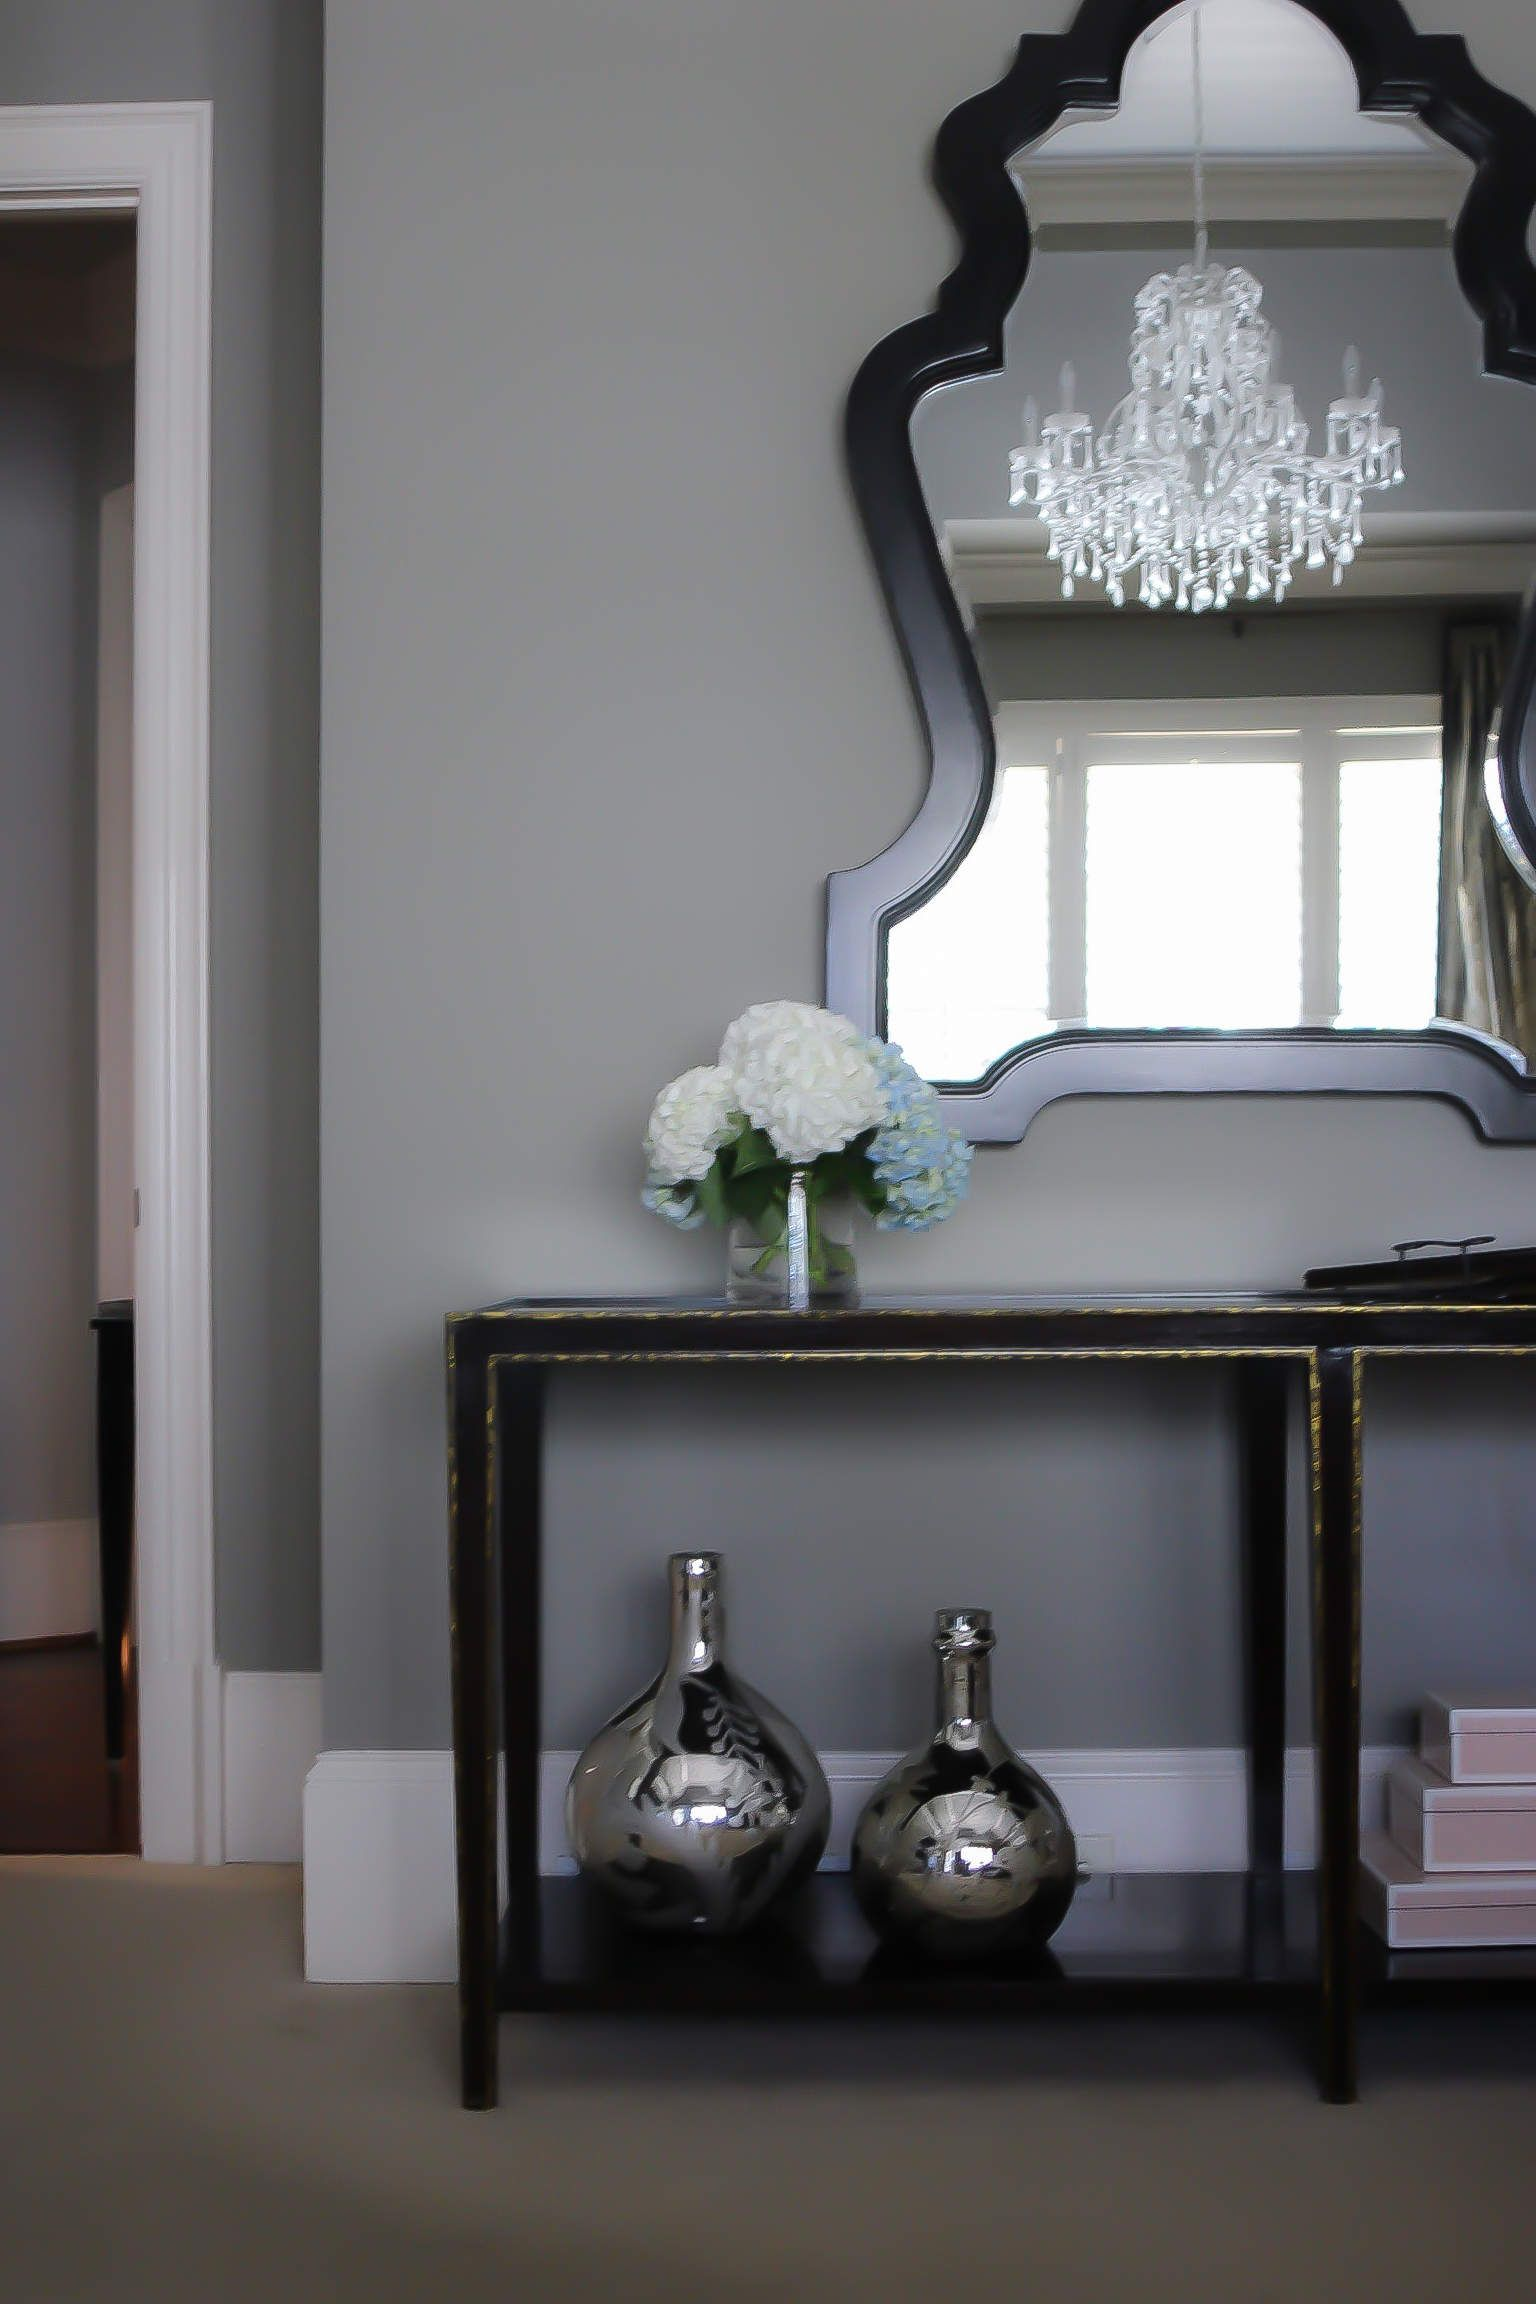 See it on Walls! Benjamin Moore Classic Gray Paint Gray